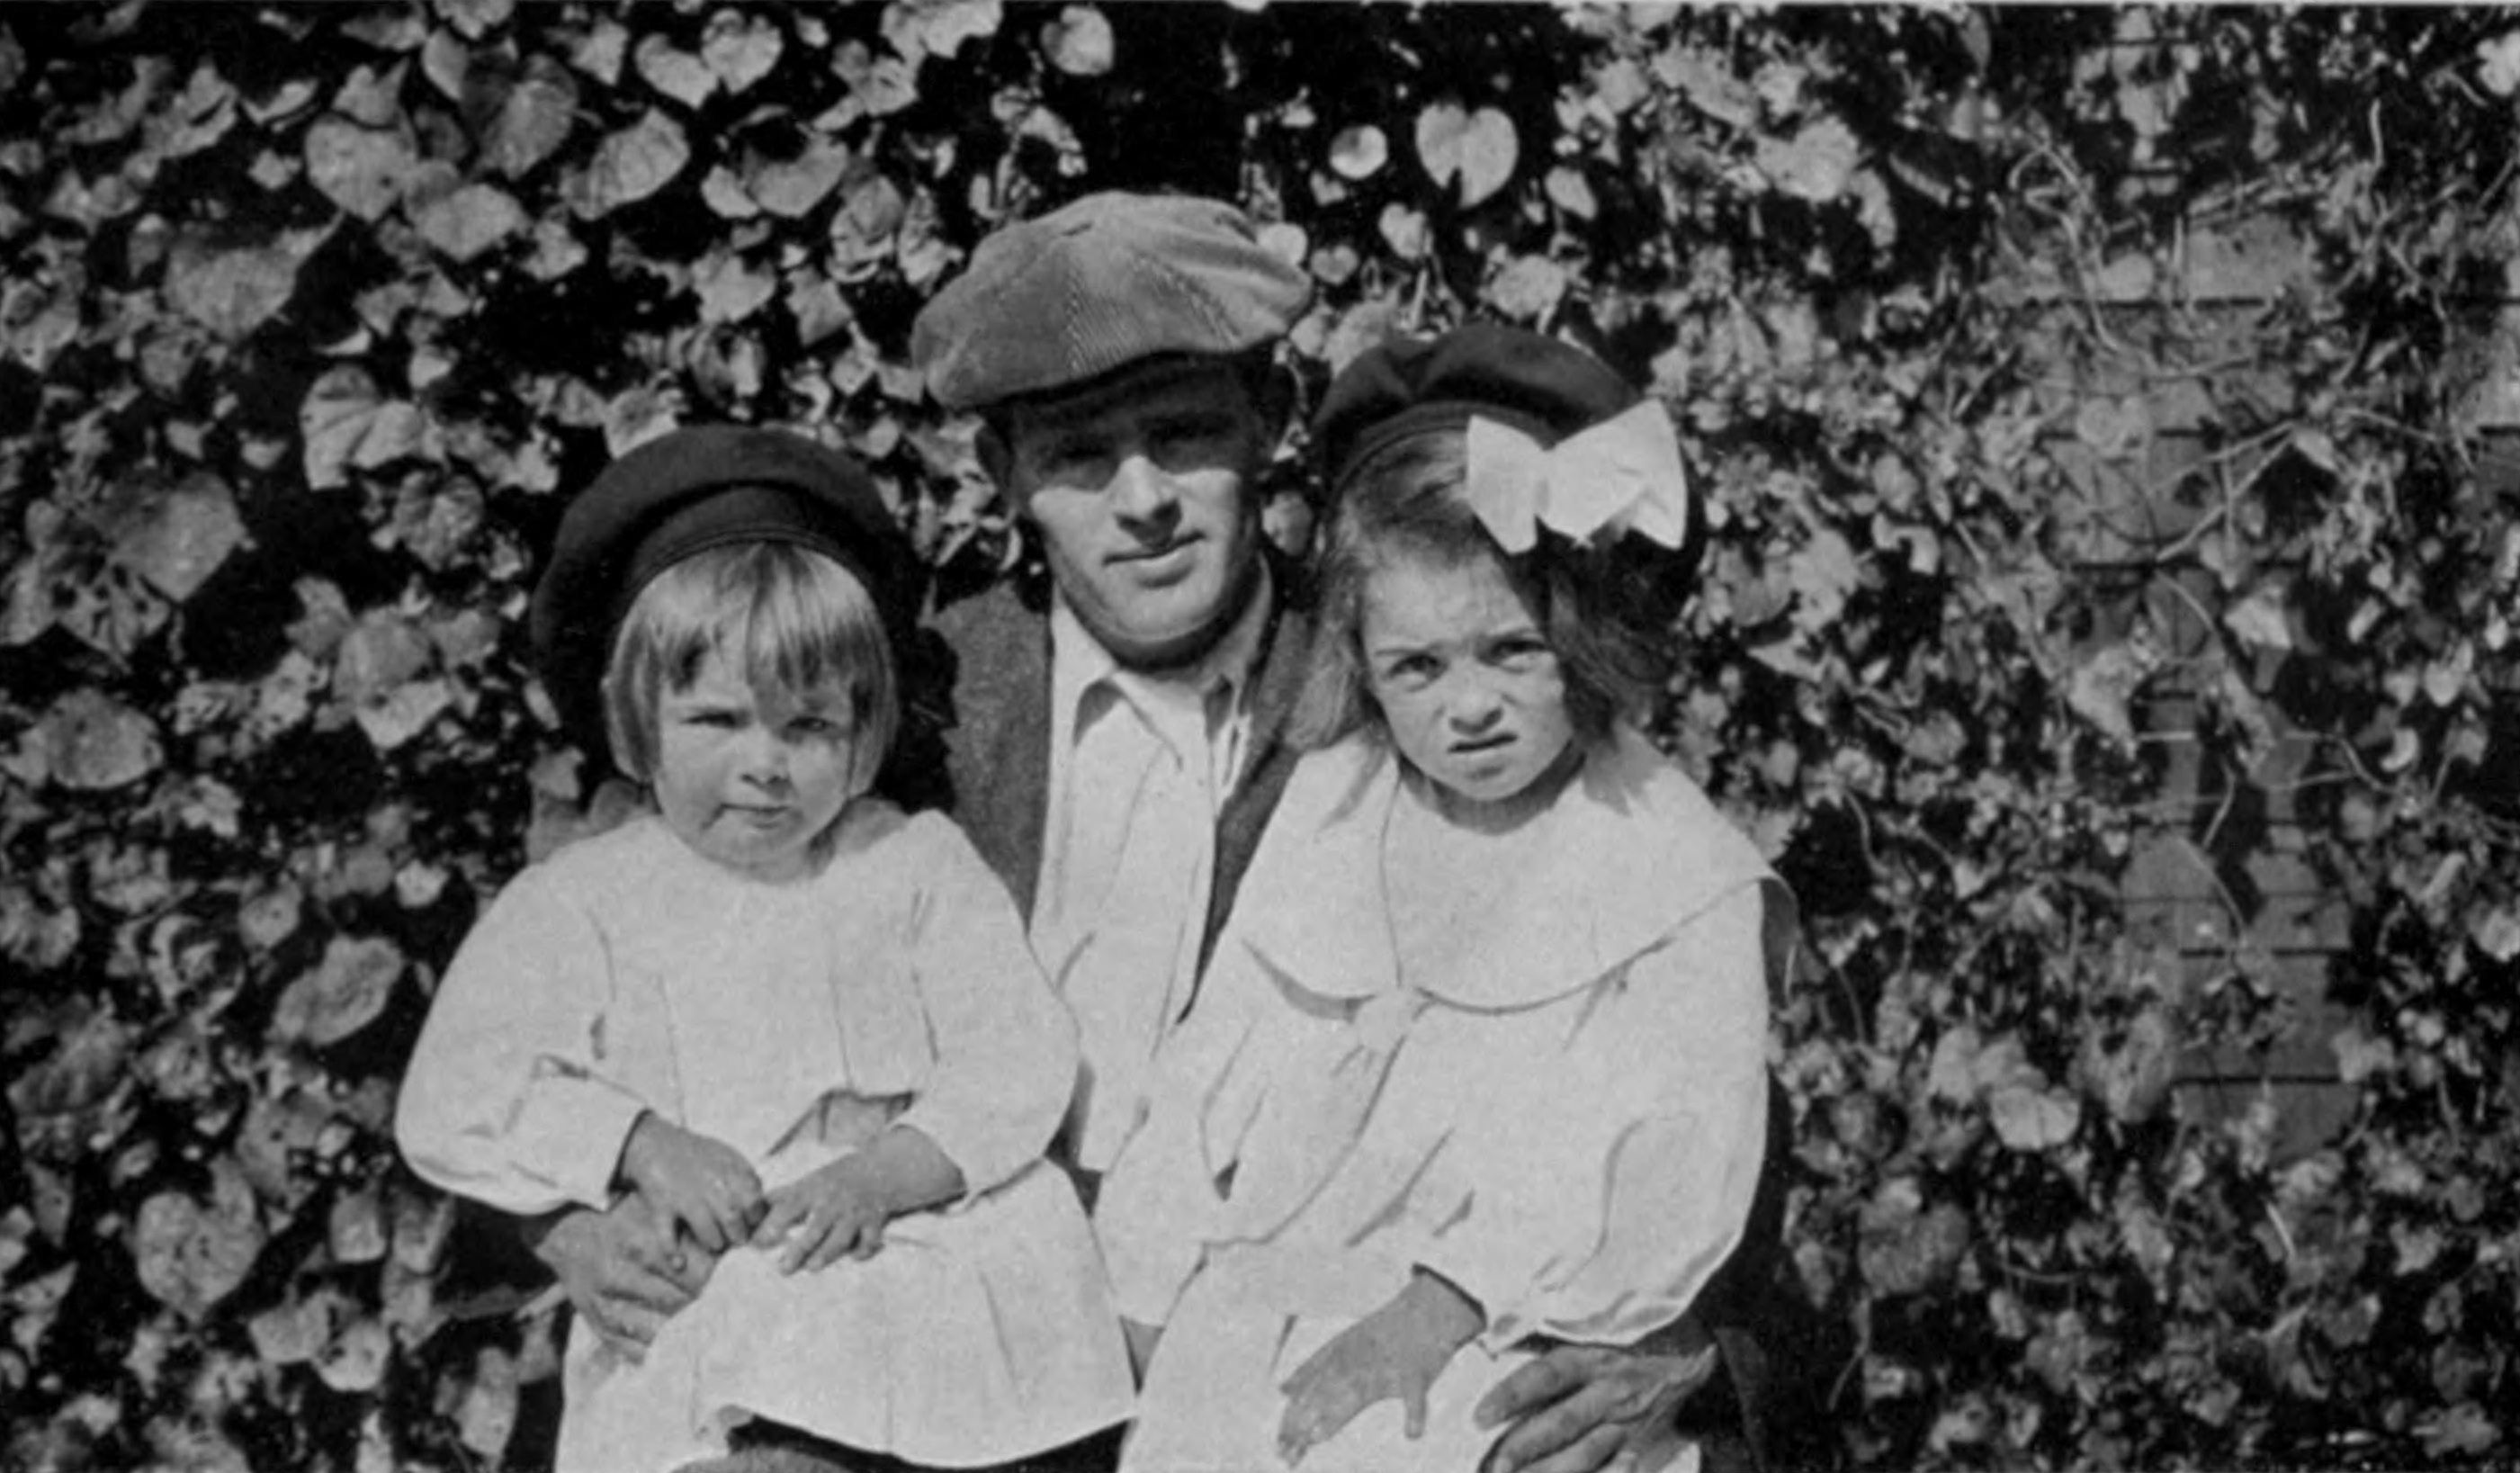 Jack_London_with_daughters_Bess_(left)_and_Joan_(right)